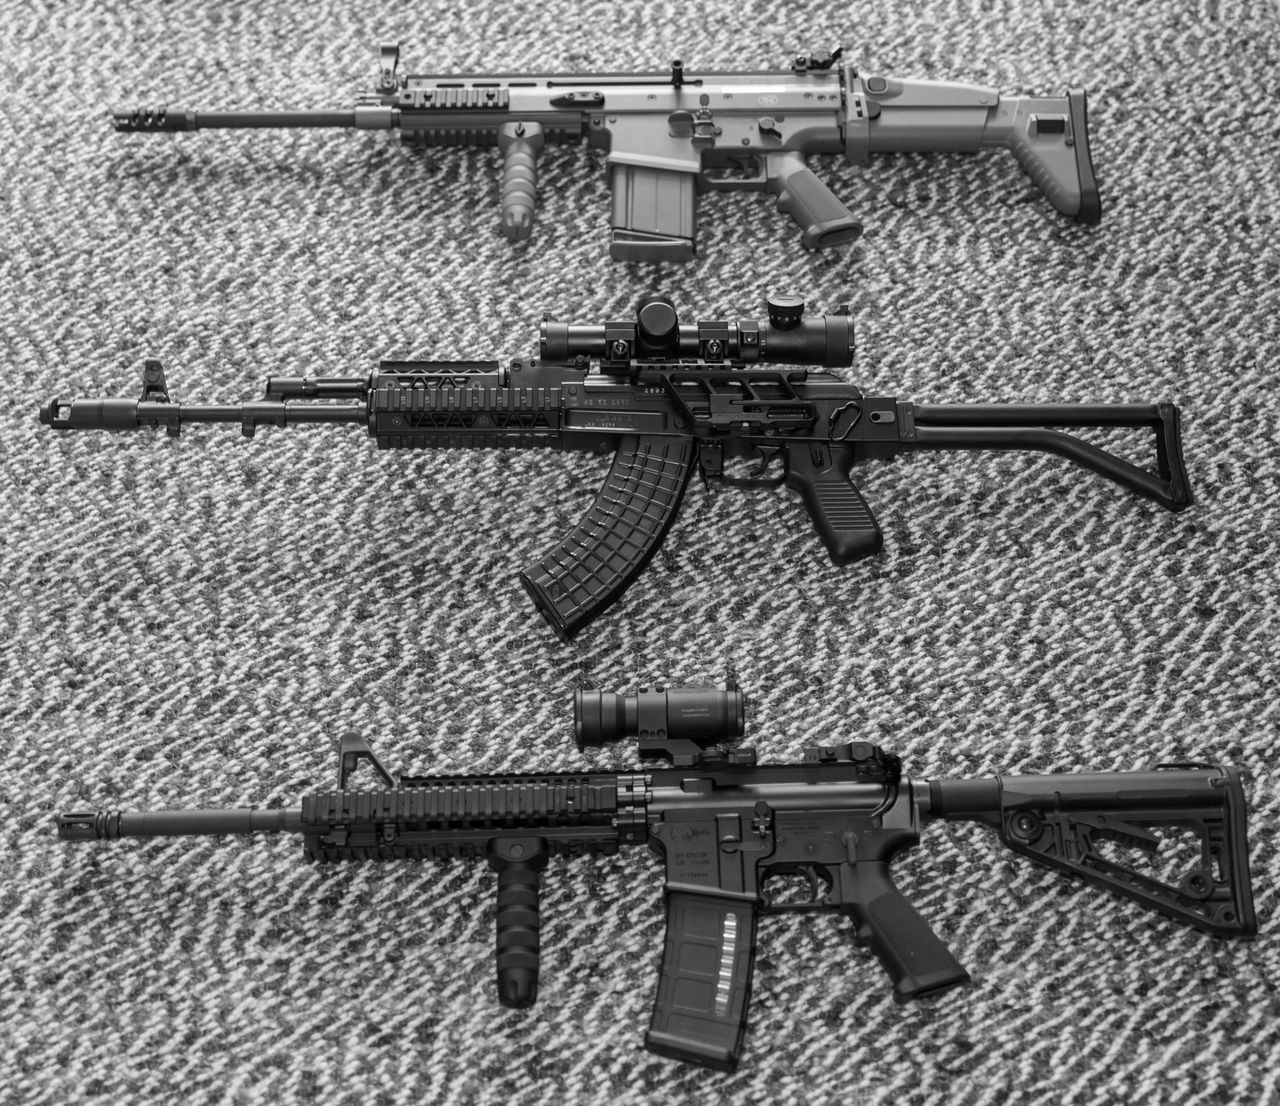 AK-47 7.62x39 AR-15 M4 FN SCAR 17 Day Gun Military No People Outdoors Protection War Weapon